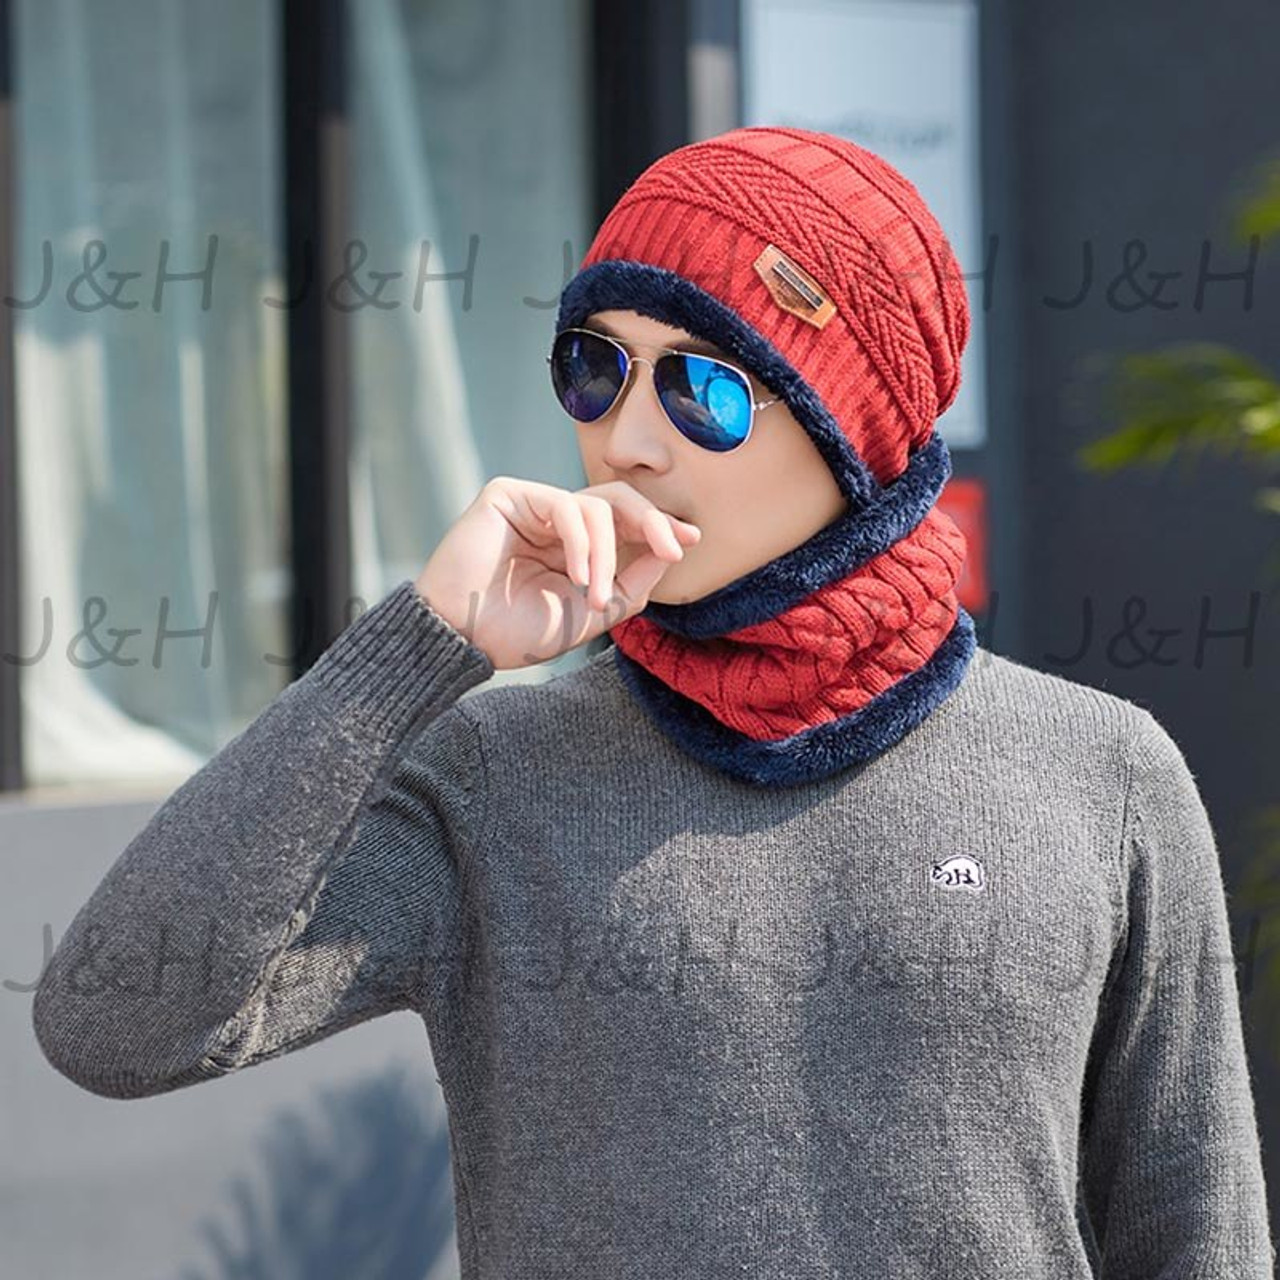 c4f8e653 ... 2018 Winter Warm Beanie Knitted Hat For Man Knitting Cap Boys Thicken  Hedging Cap Balaclava Hats ...